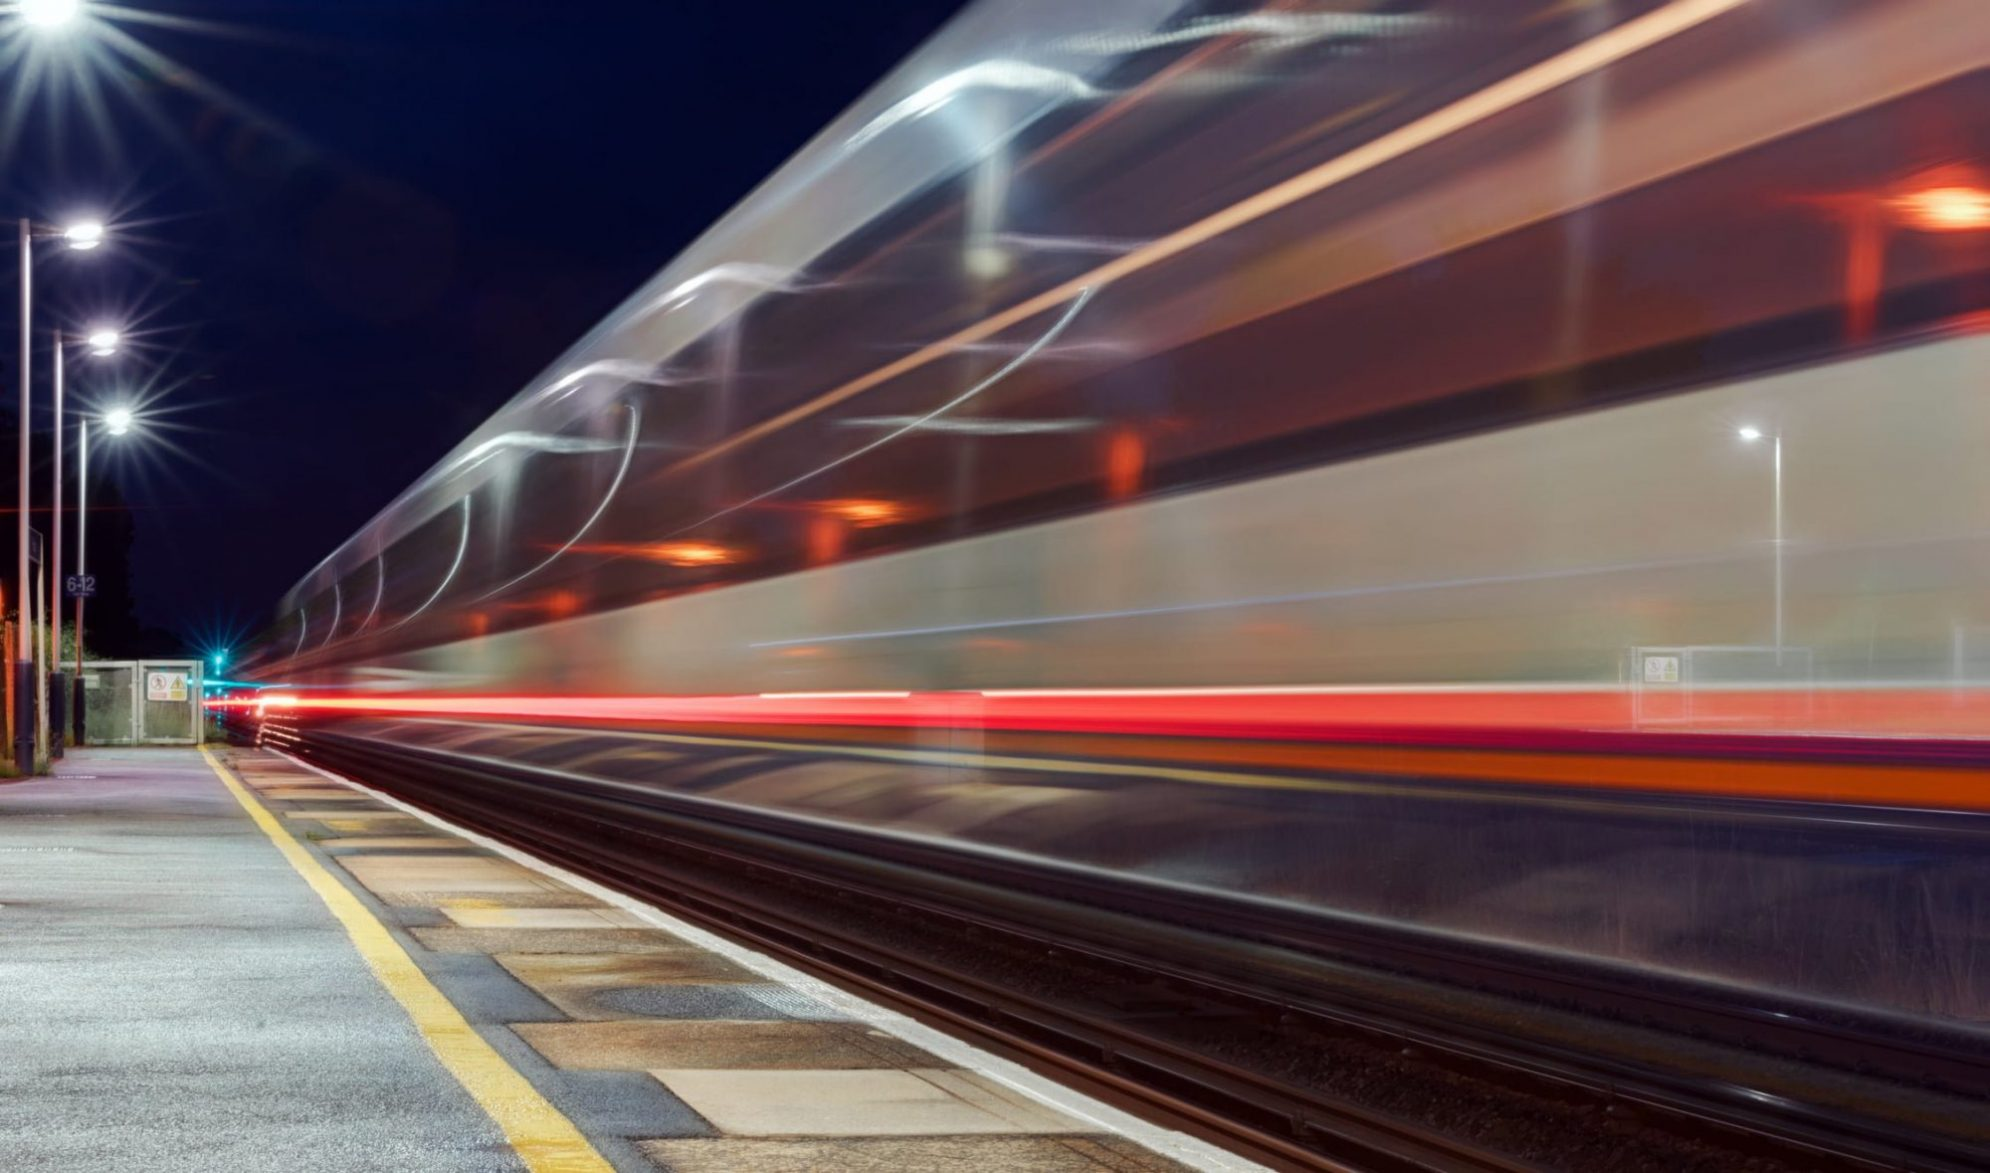 Train passing through a UK station at high speed captured as motion blur